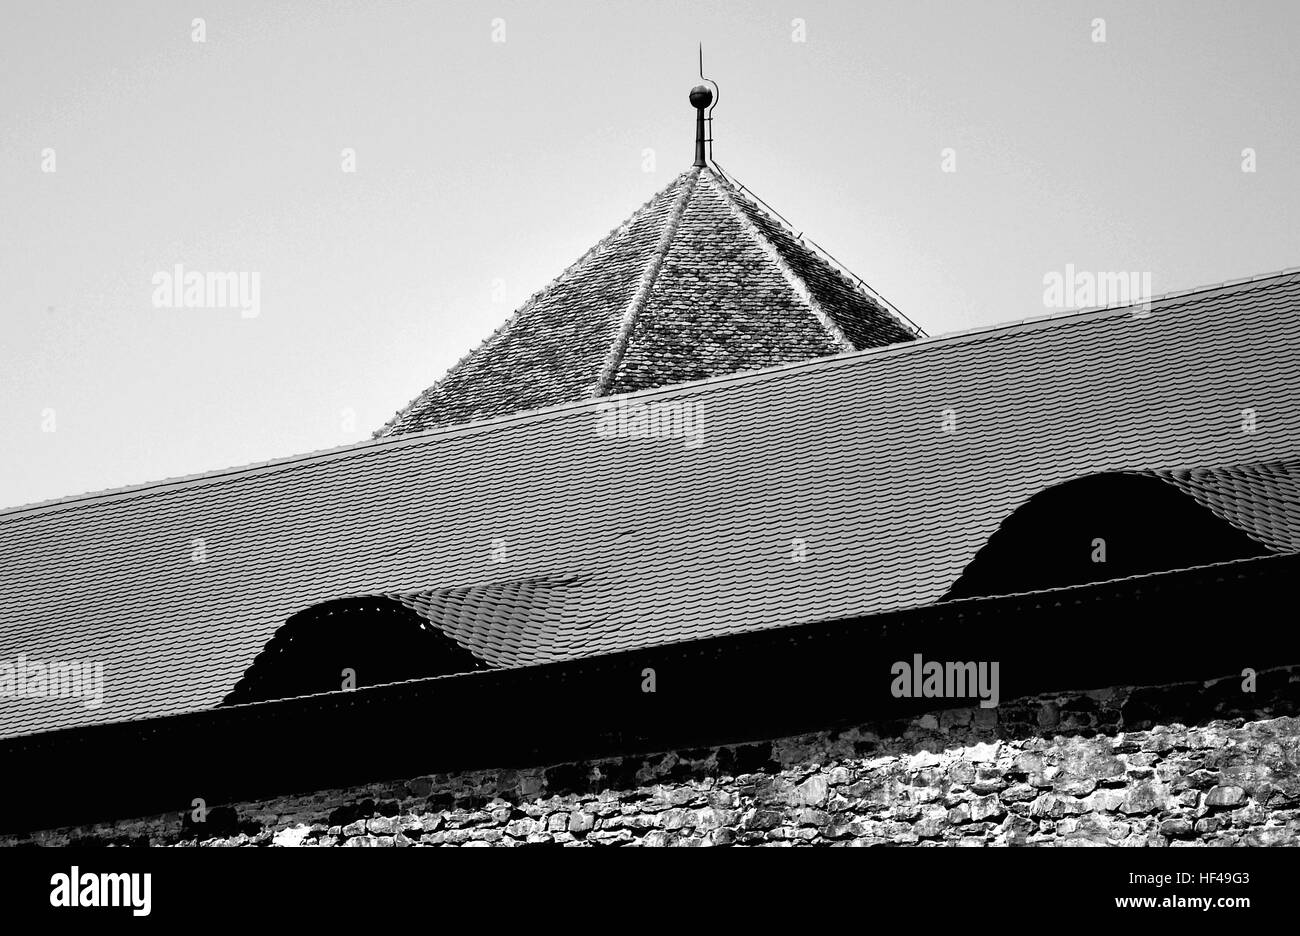 old architectural structures for romanian transilvania buildings with stone, tiled roofs, shingle roofs and eyeshaped - Stock Image